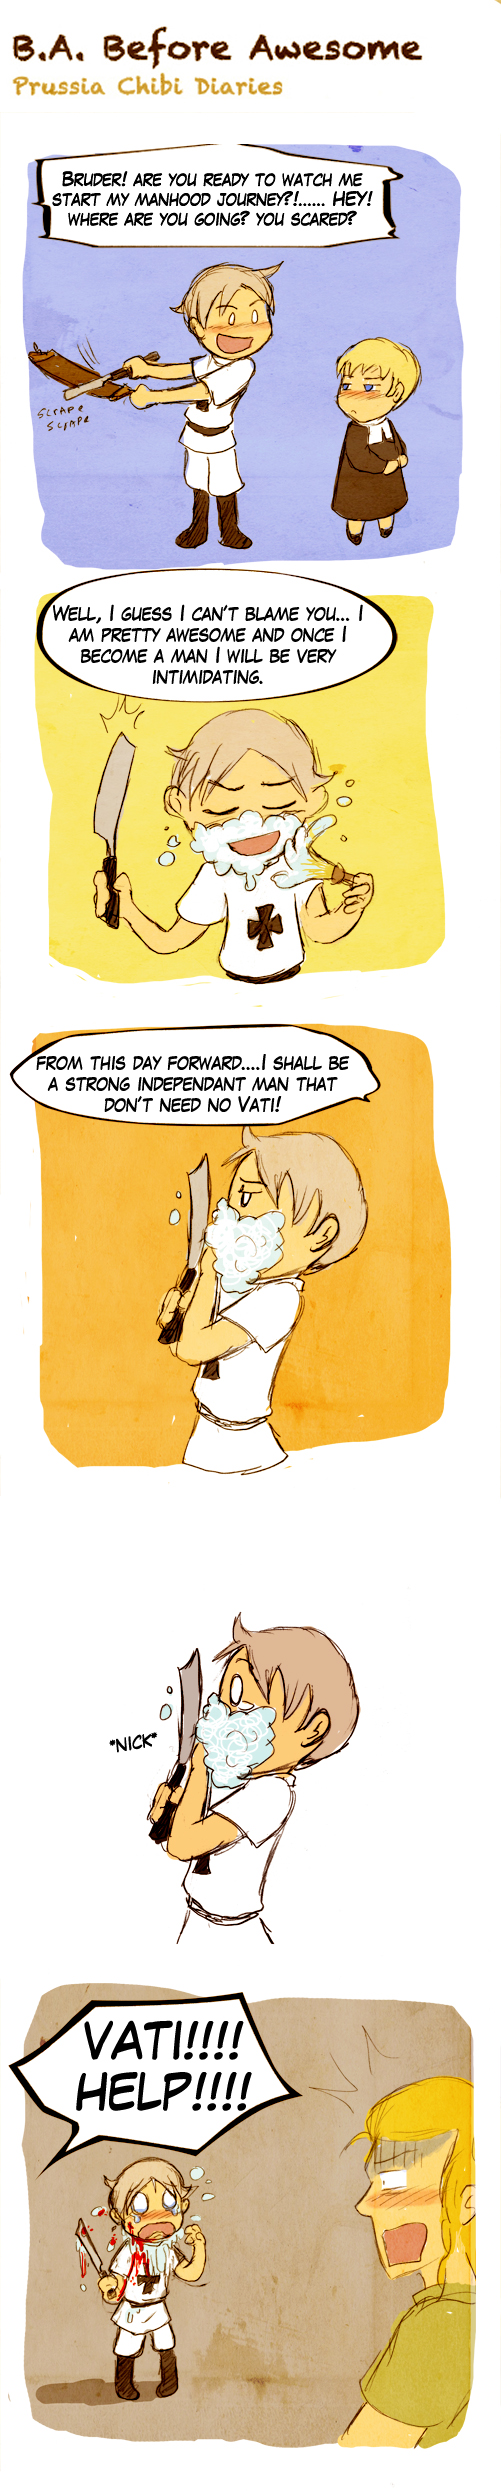 Chibi Prussia Diaries -051- by Arkham-Insanity